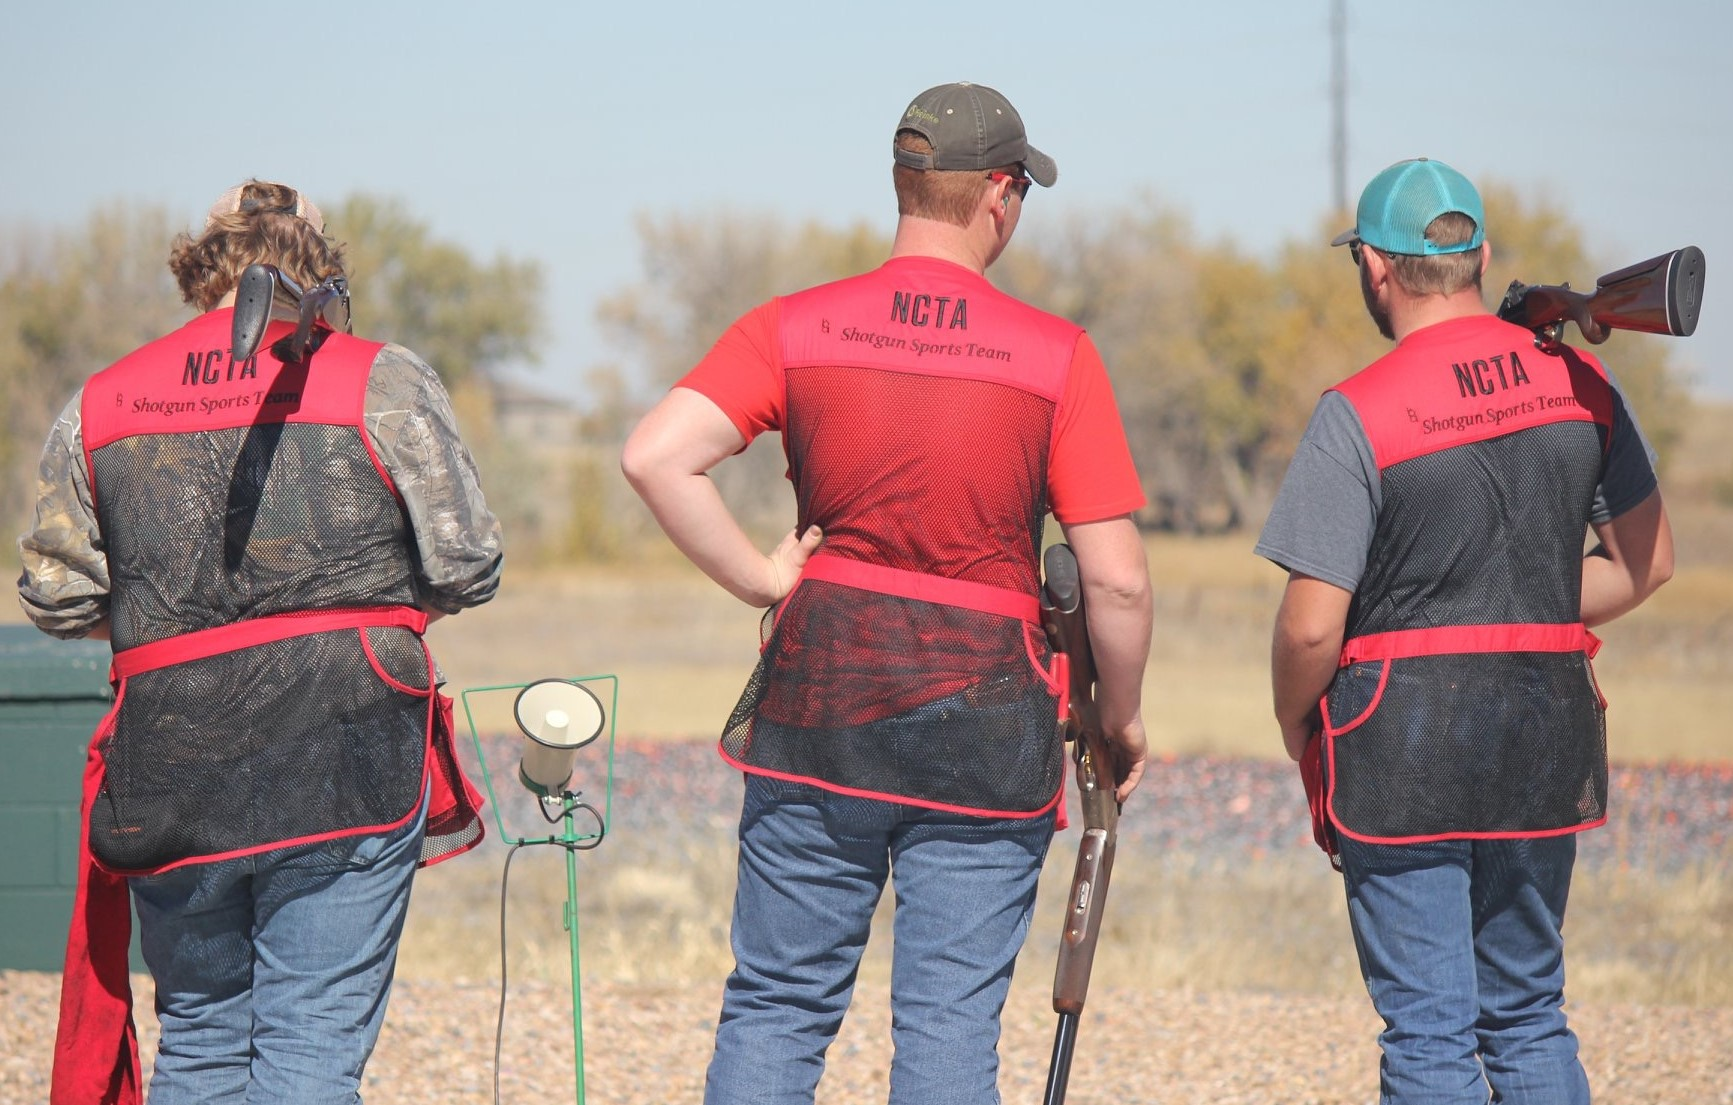 Students with the NCTA Aggie Shotgun Sports Team will compete in Lincoln this weekend.  On Sept. 27-29 they host the Prairie Circuit match at North Platte. (Crouse/NCTA File Photo)